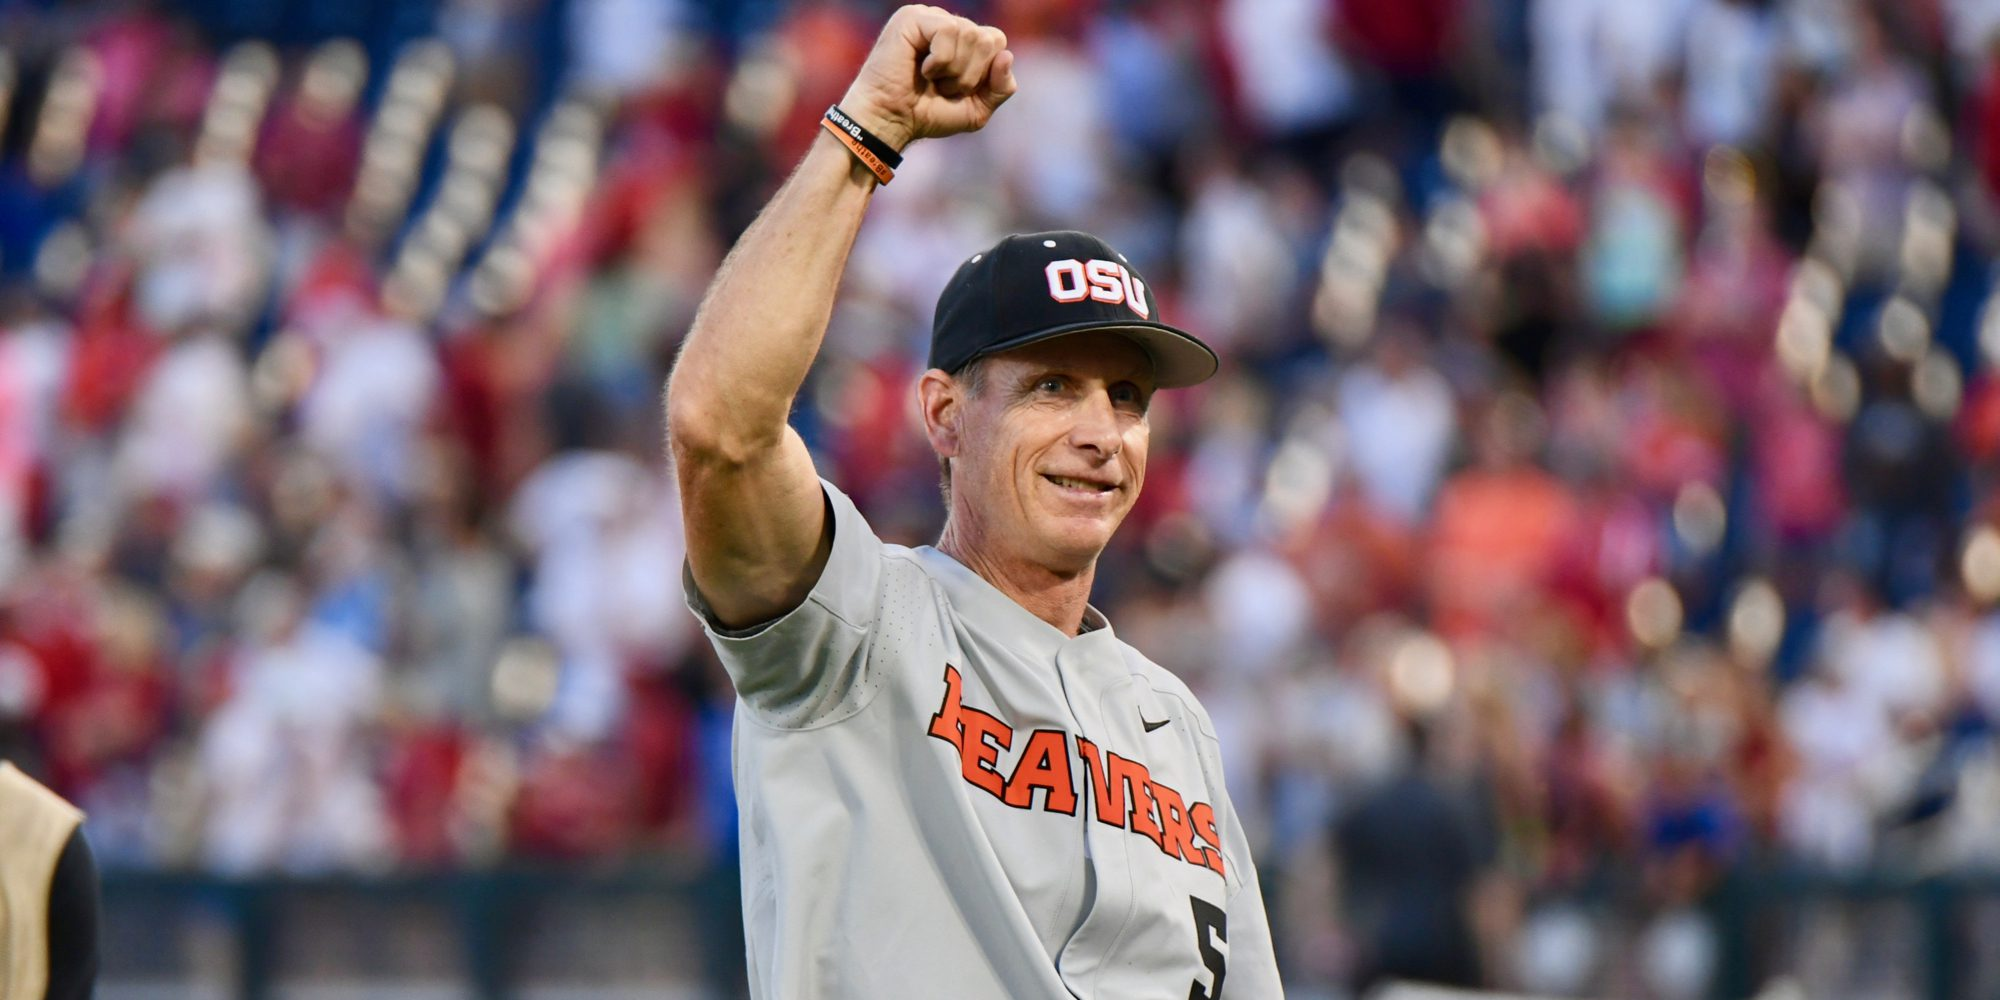 Oregon State coach Pat Casey salutes fans after winning his third title